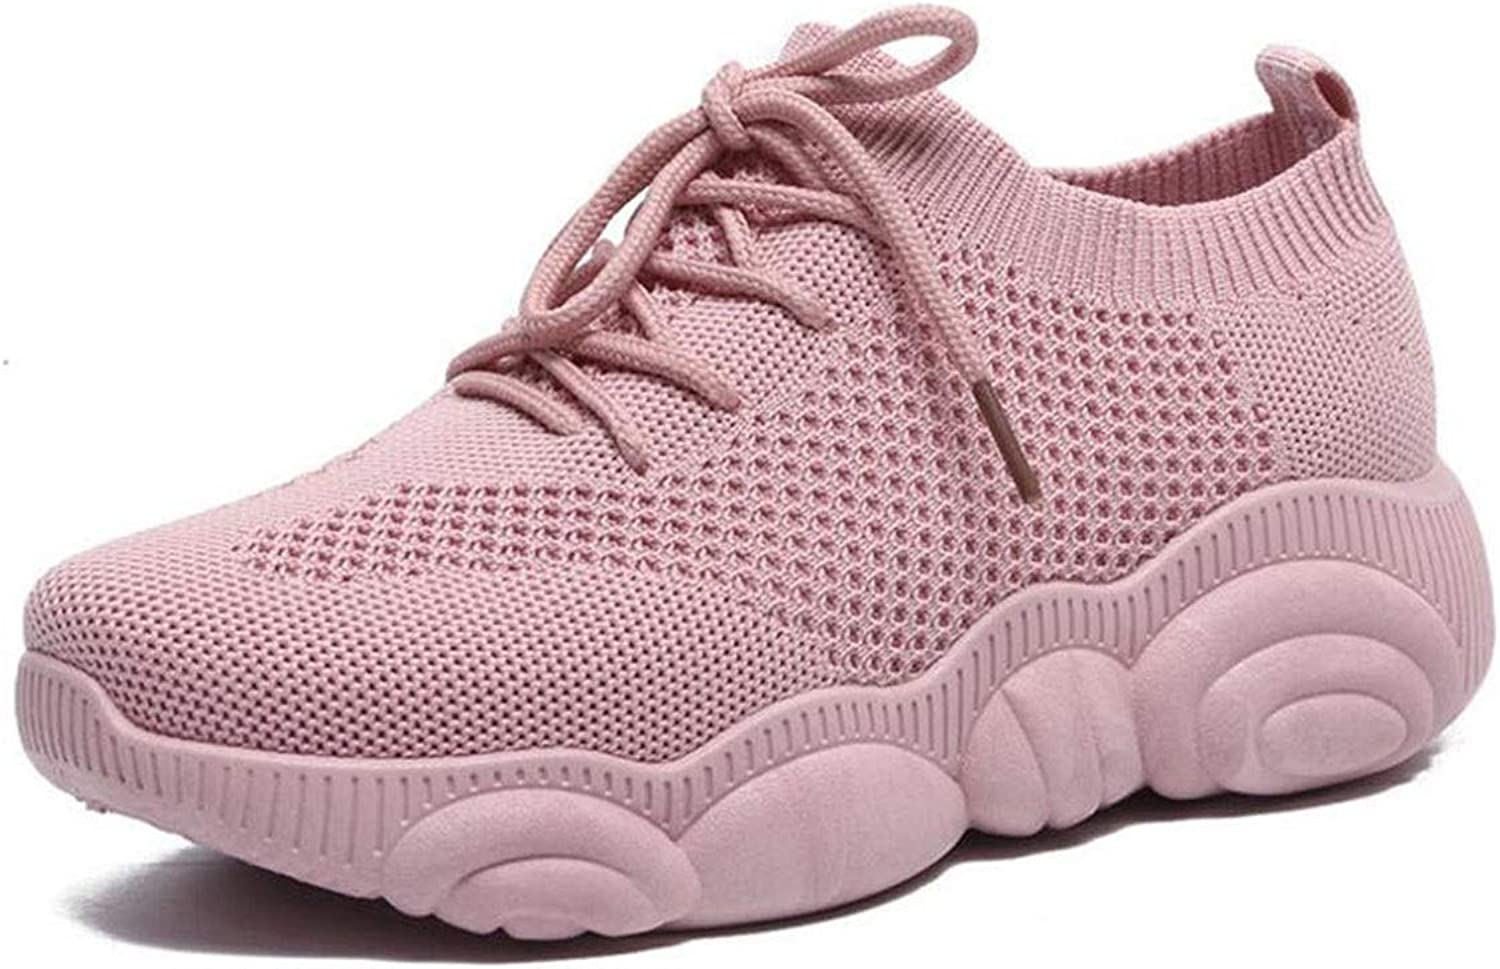 Women's Running shoes Women's Trainers Platform Sneakers Jogging Mesh Air Cushion Ladies Runing shoes Women's Walking shoes Leather Anti-Slip Anti-Collision Water-Resistant shoes